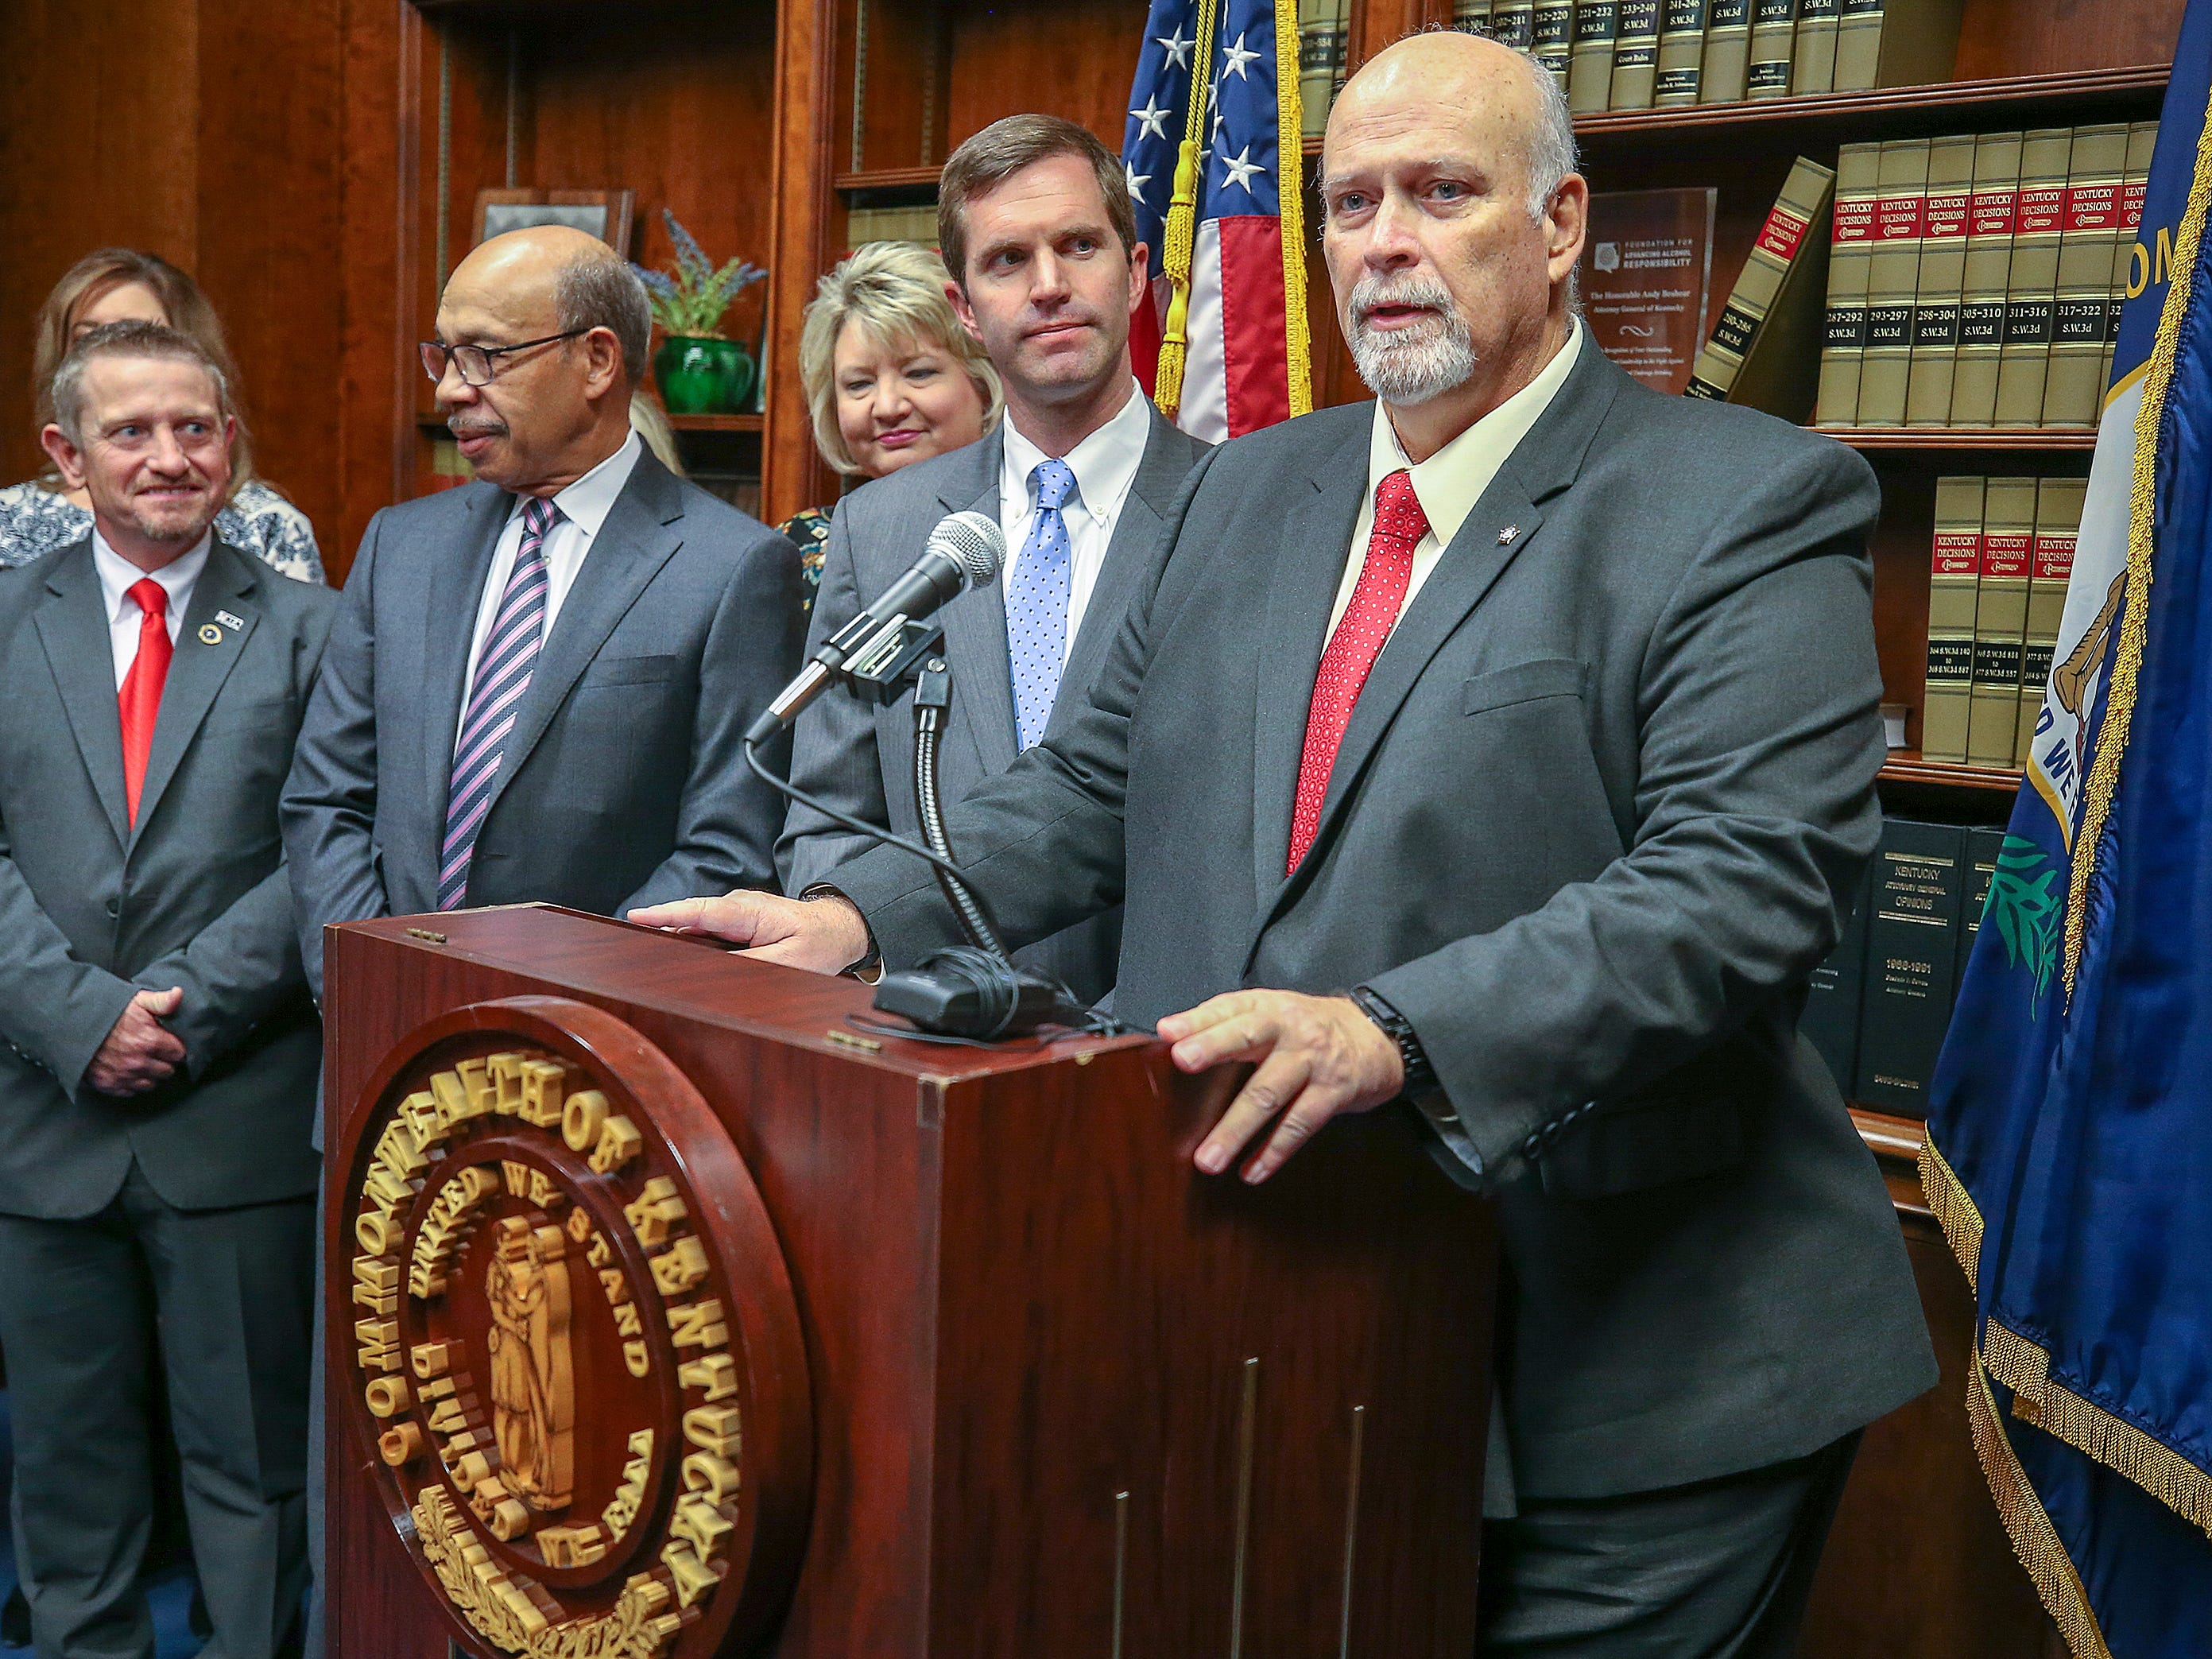 Jerry Powell, with the FOP, speaks during a press conference with Kentucky Attorney General Andy Beshear after a Kentucky Supreme Court ruling that overturned Gov. Matt Bevin's pension reform bill. December 13, 2018